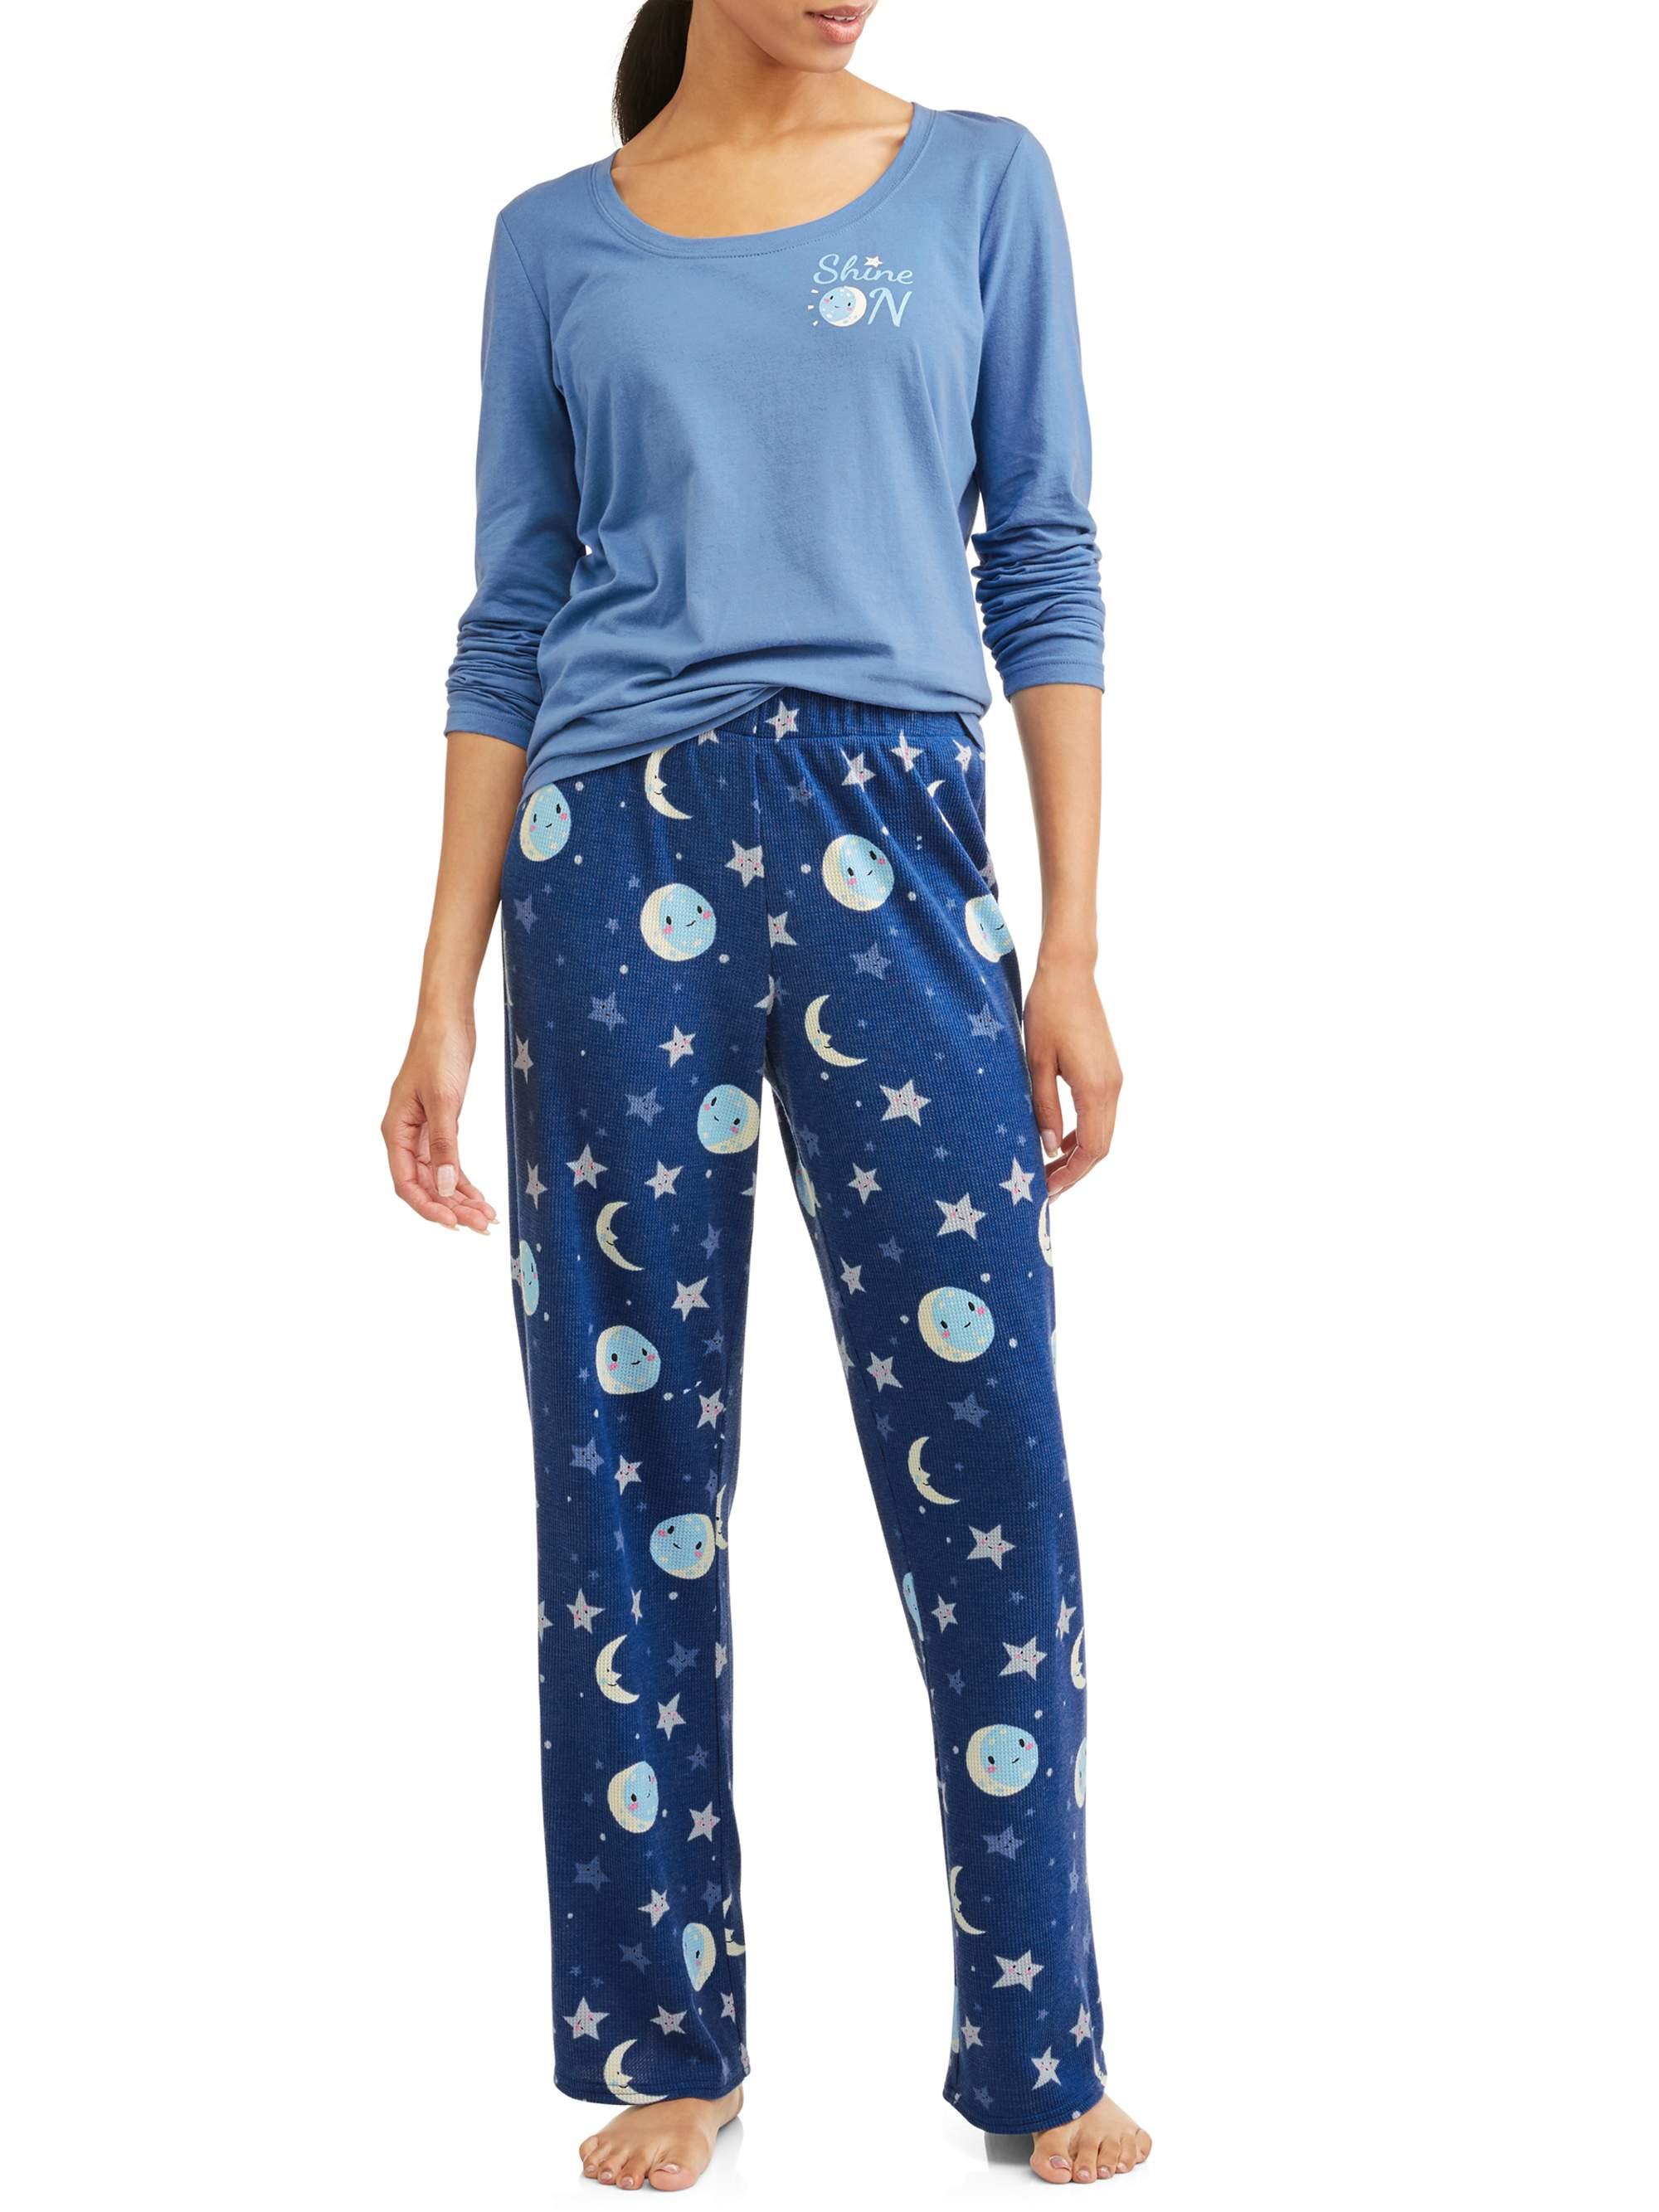 Toast & Jammies Women's and Women's plus 2 piece long sleeve top and thermal pant sleep set